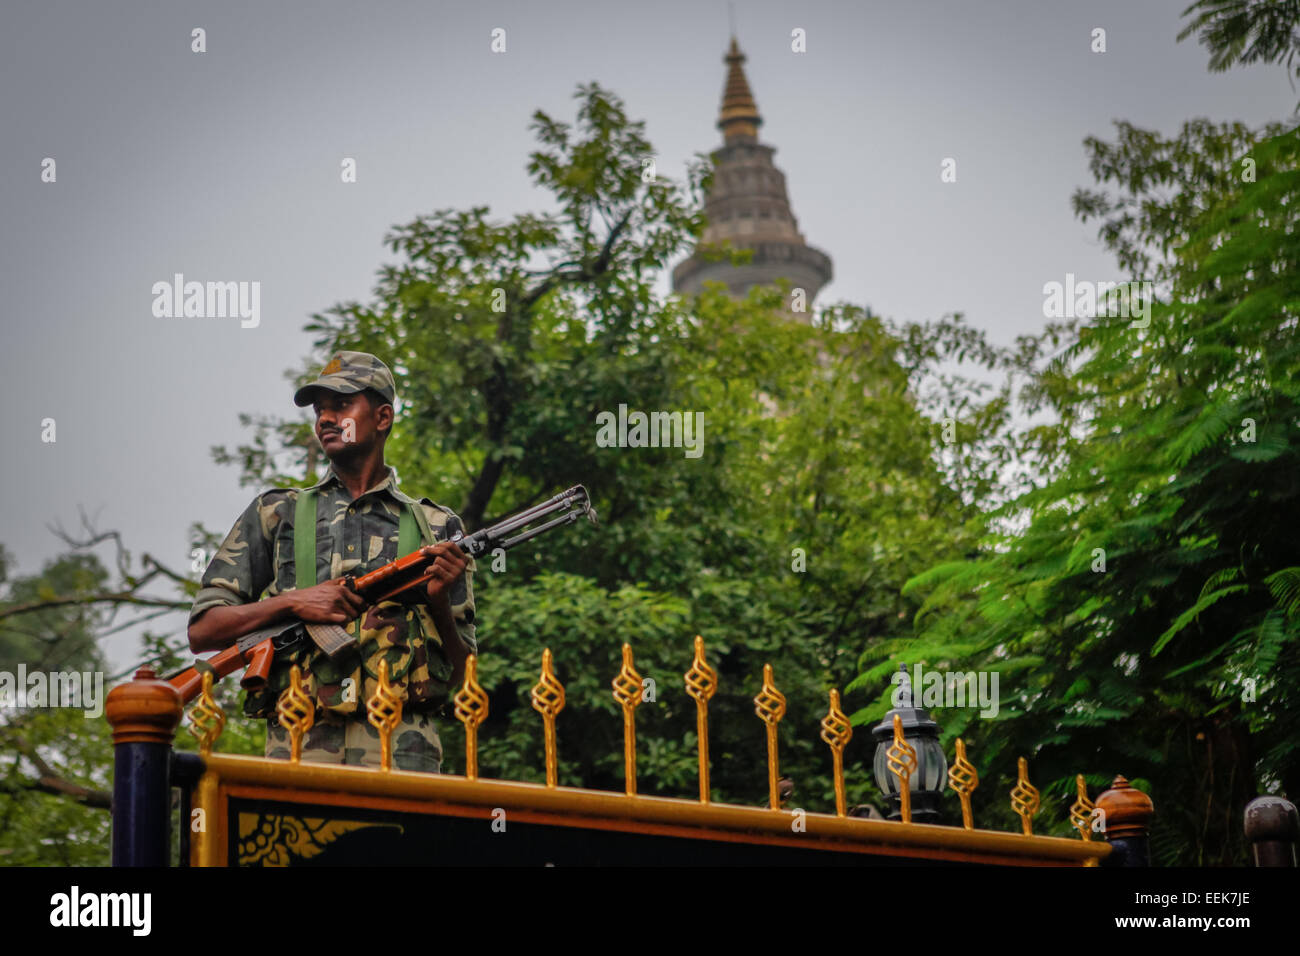 Indian military personnel guards Mahabodhi temple a day after a bomb blast on July 7, 2013. - Stock Image